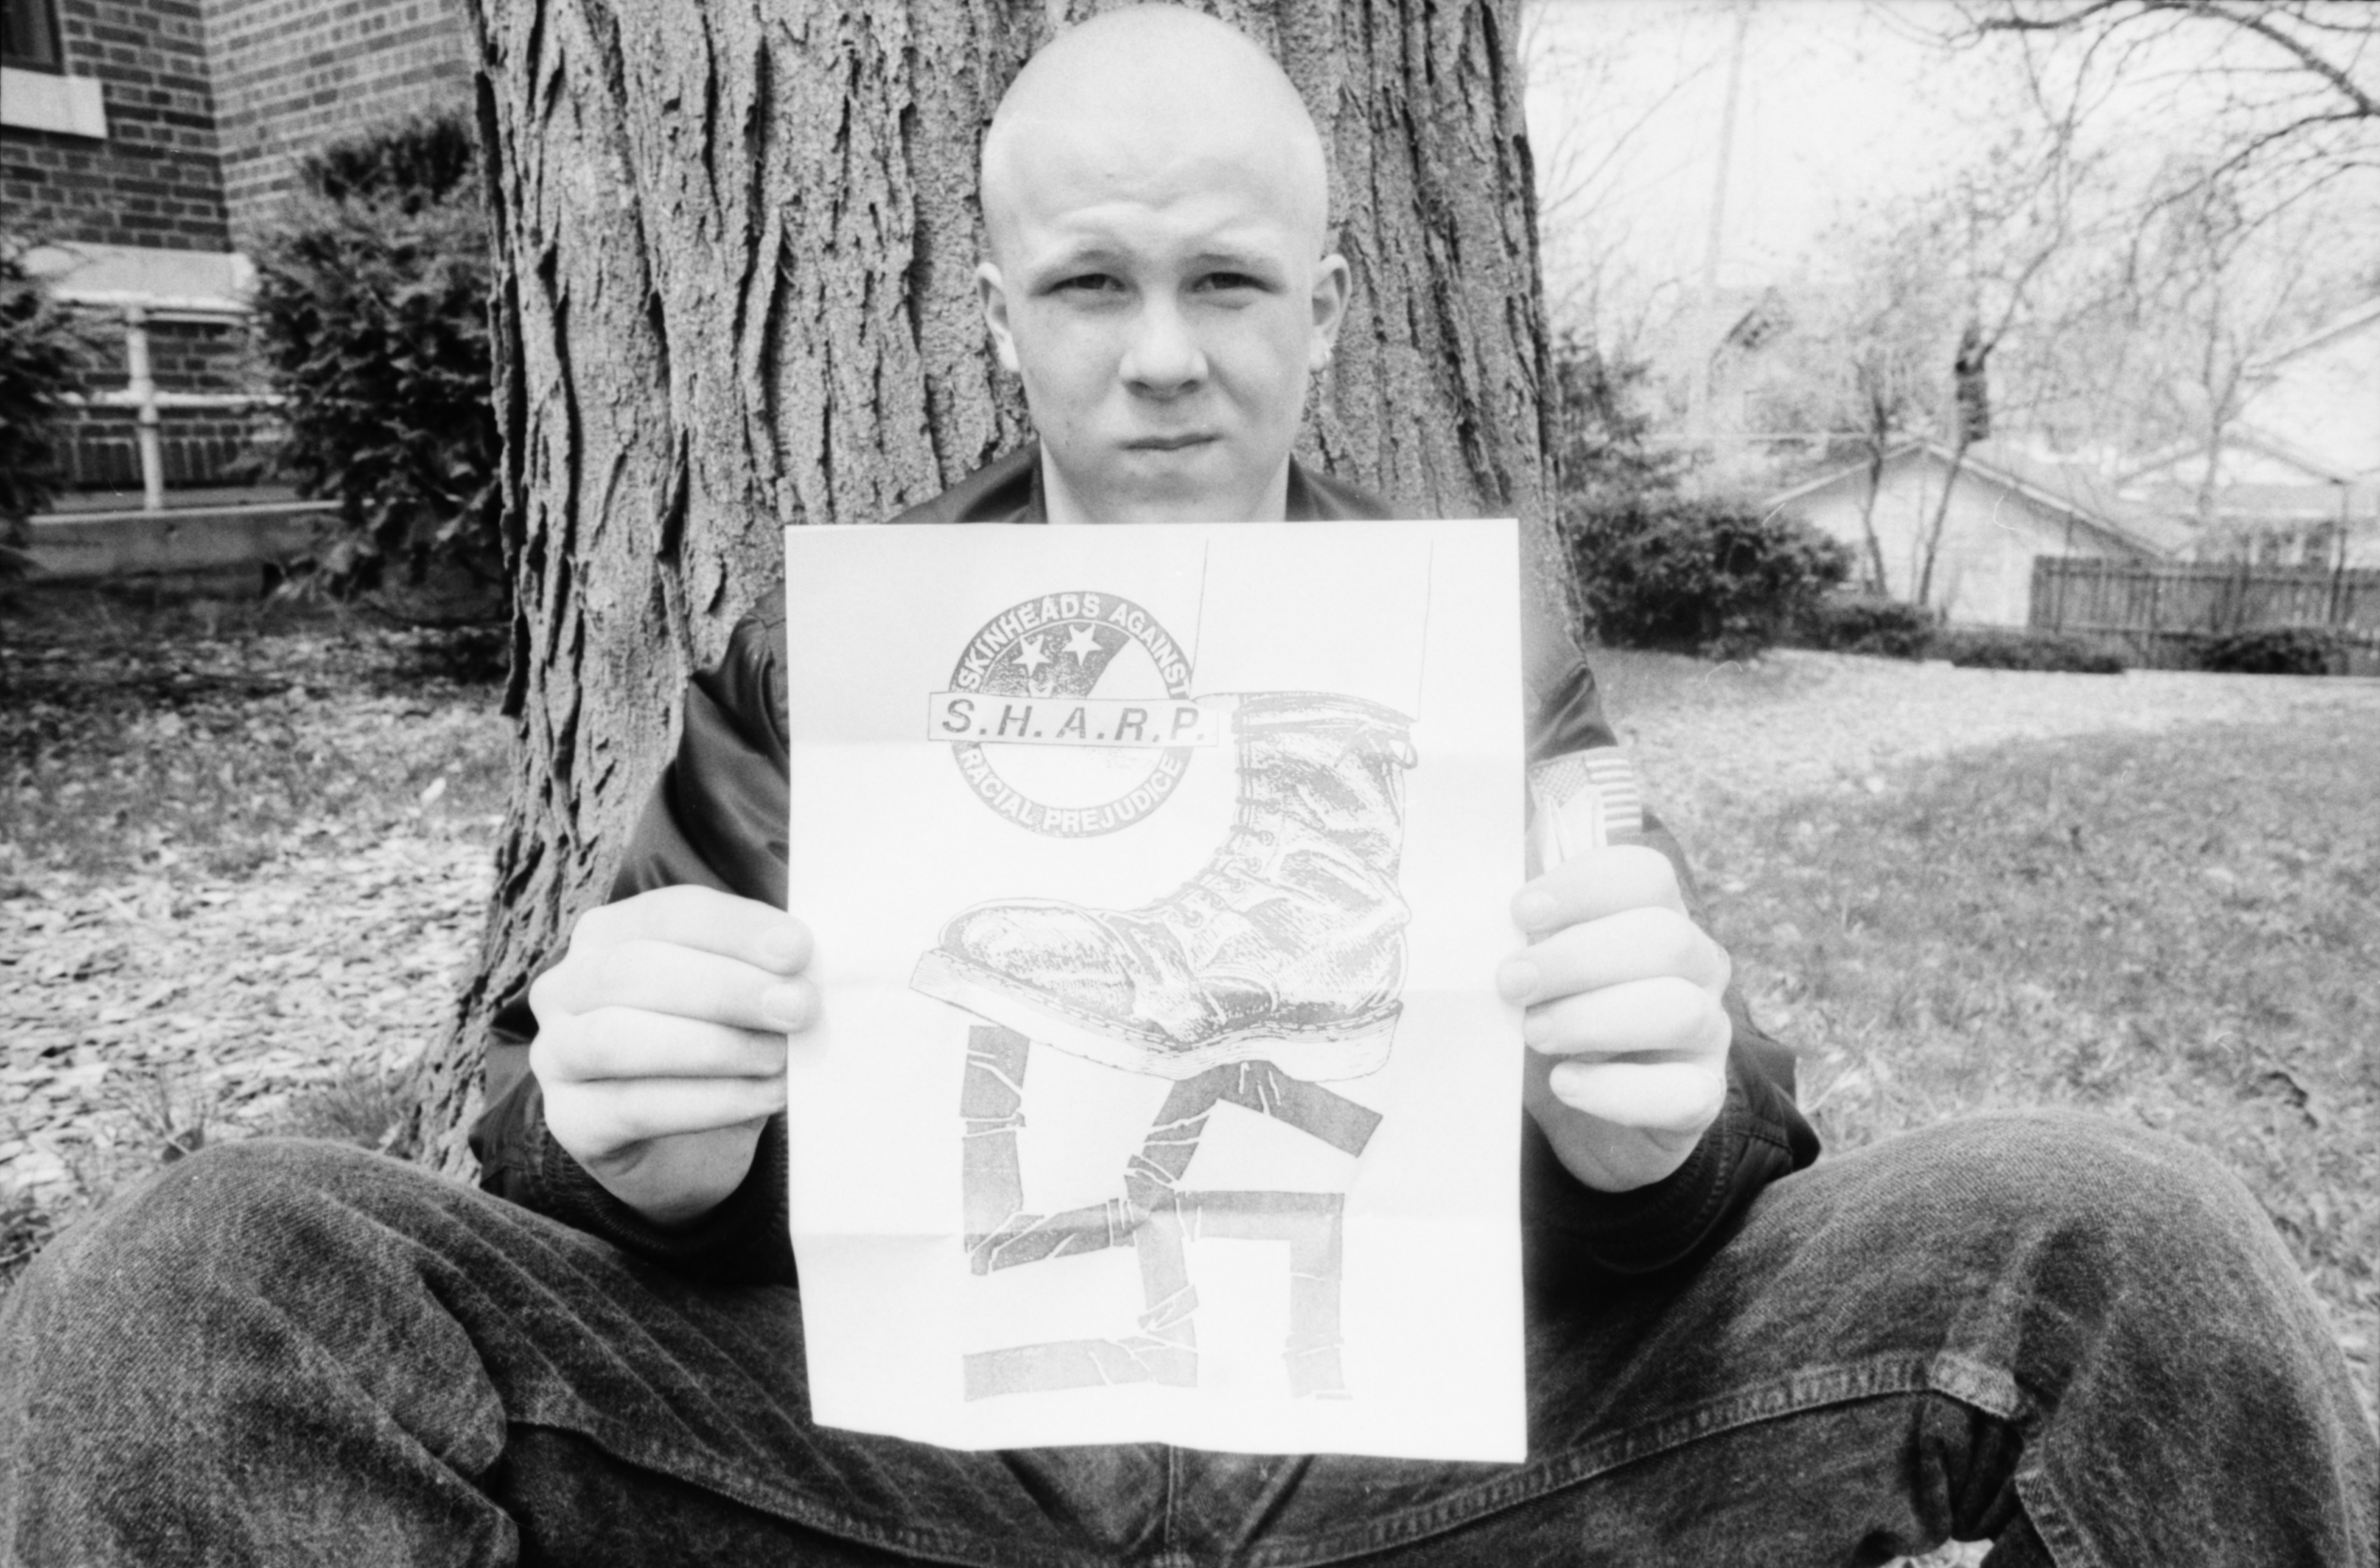 Community High Skinhead Dylan Goodman Holds Anti-Racism Poster, April 1989 image